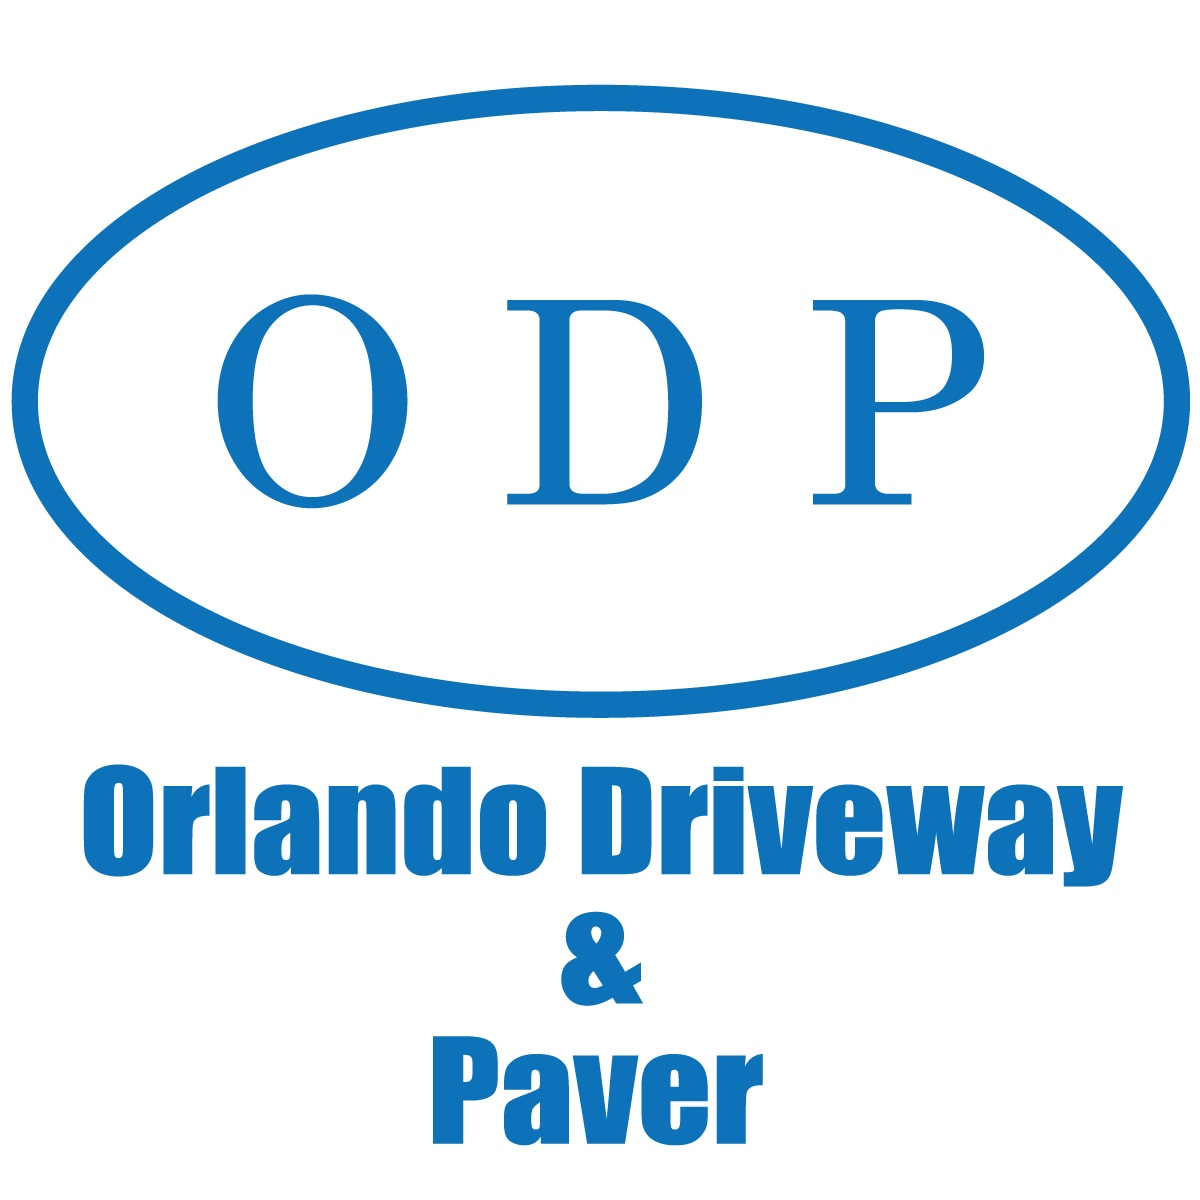 Orlando Driveway and Paver